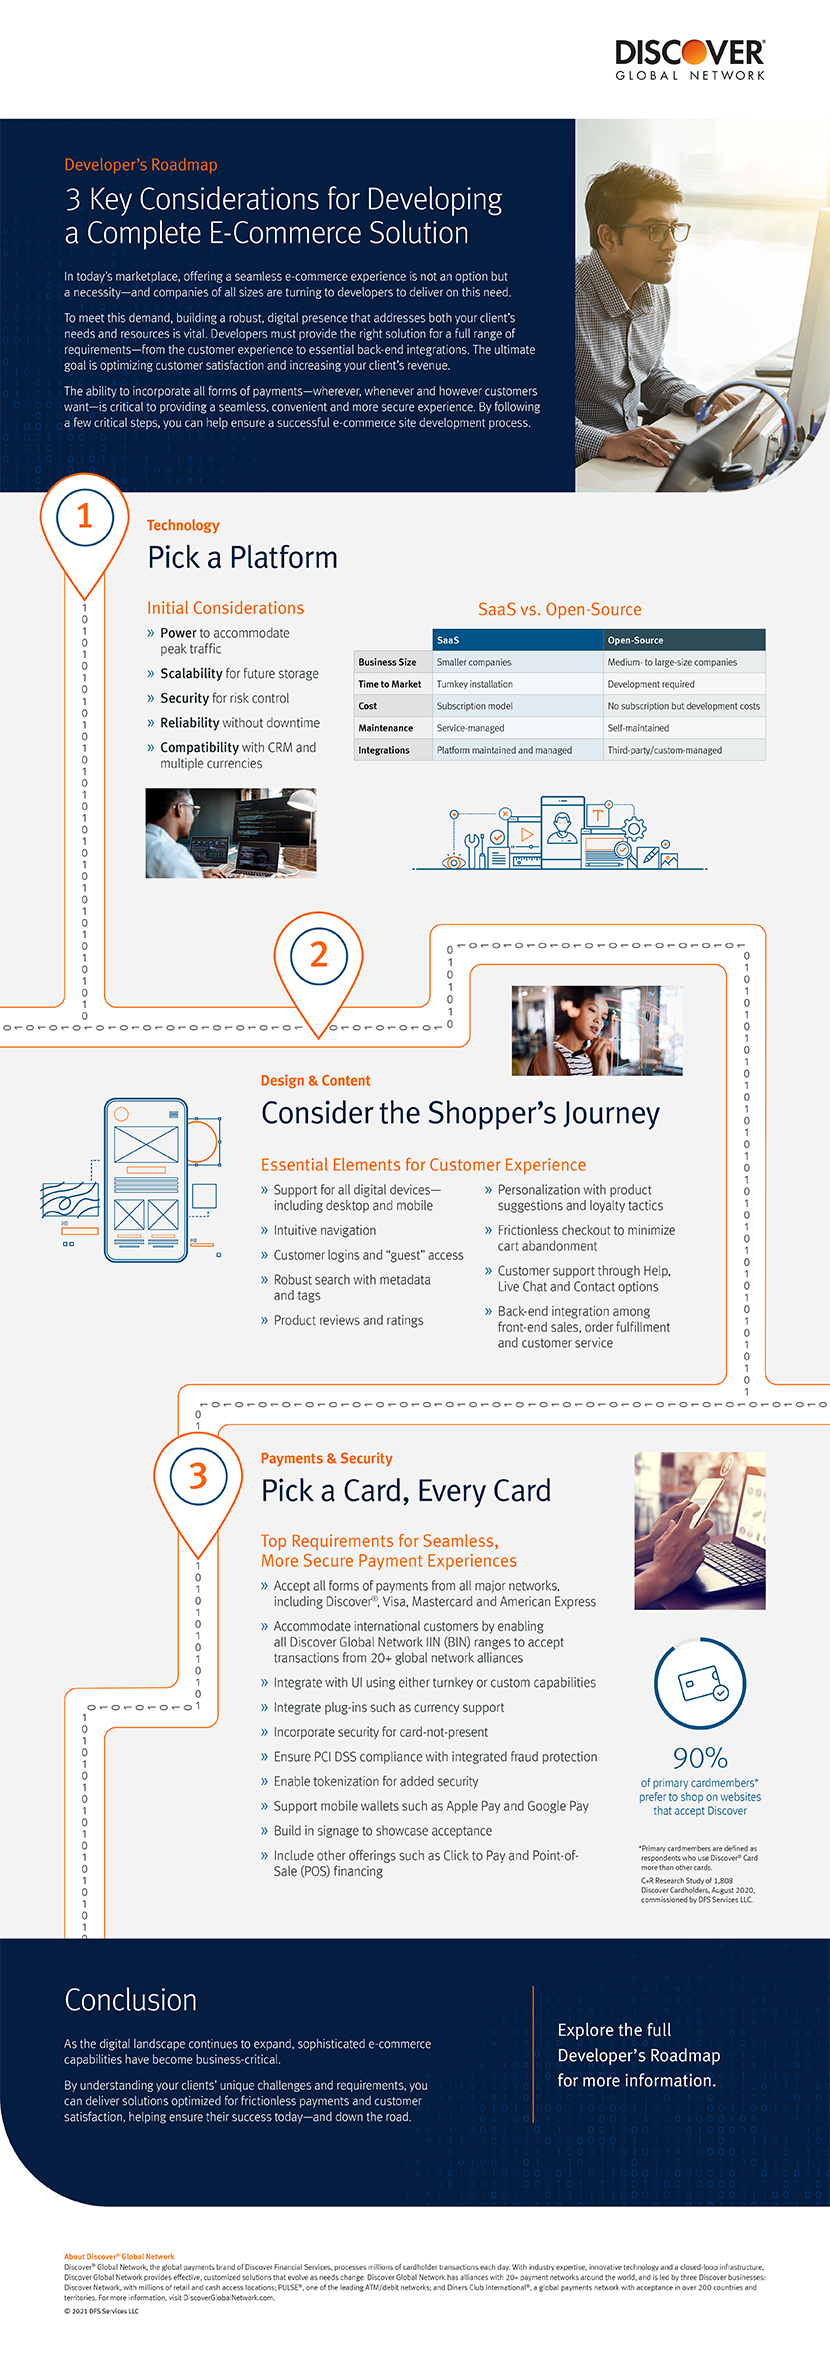 Key considerations for developing e-commerce solution